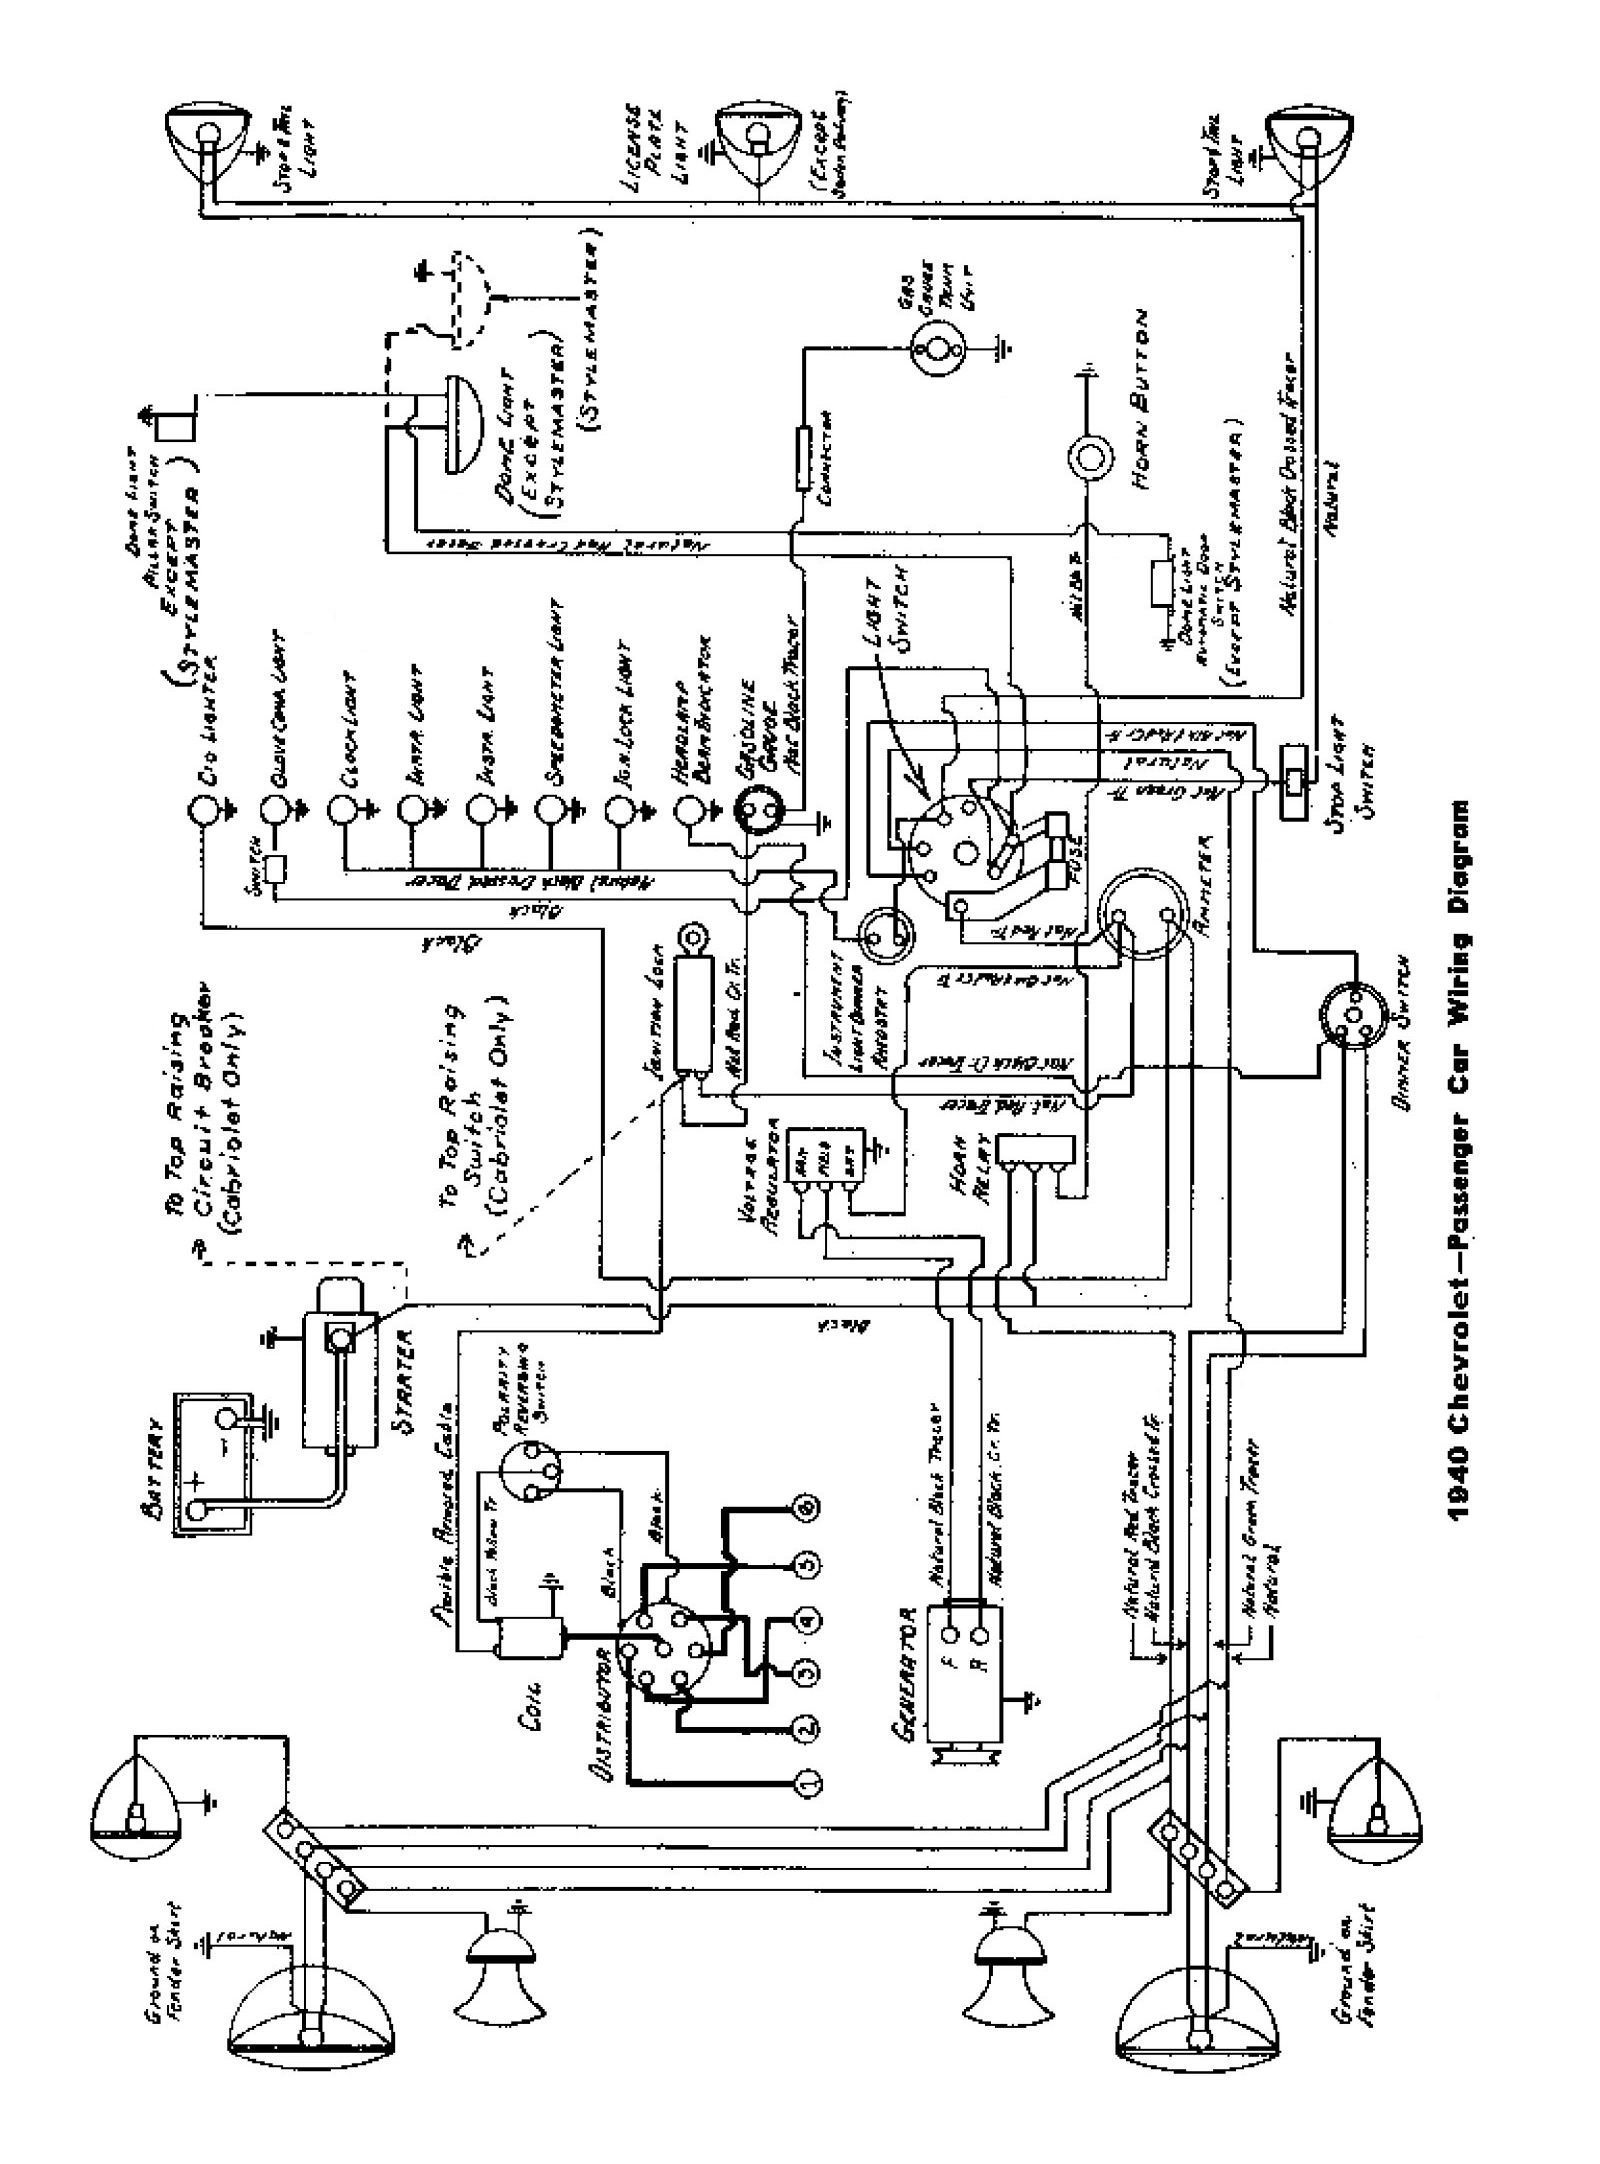 Ef 6302  Wiring Diagram For 1940 Chevy Business Coupe Get